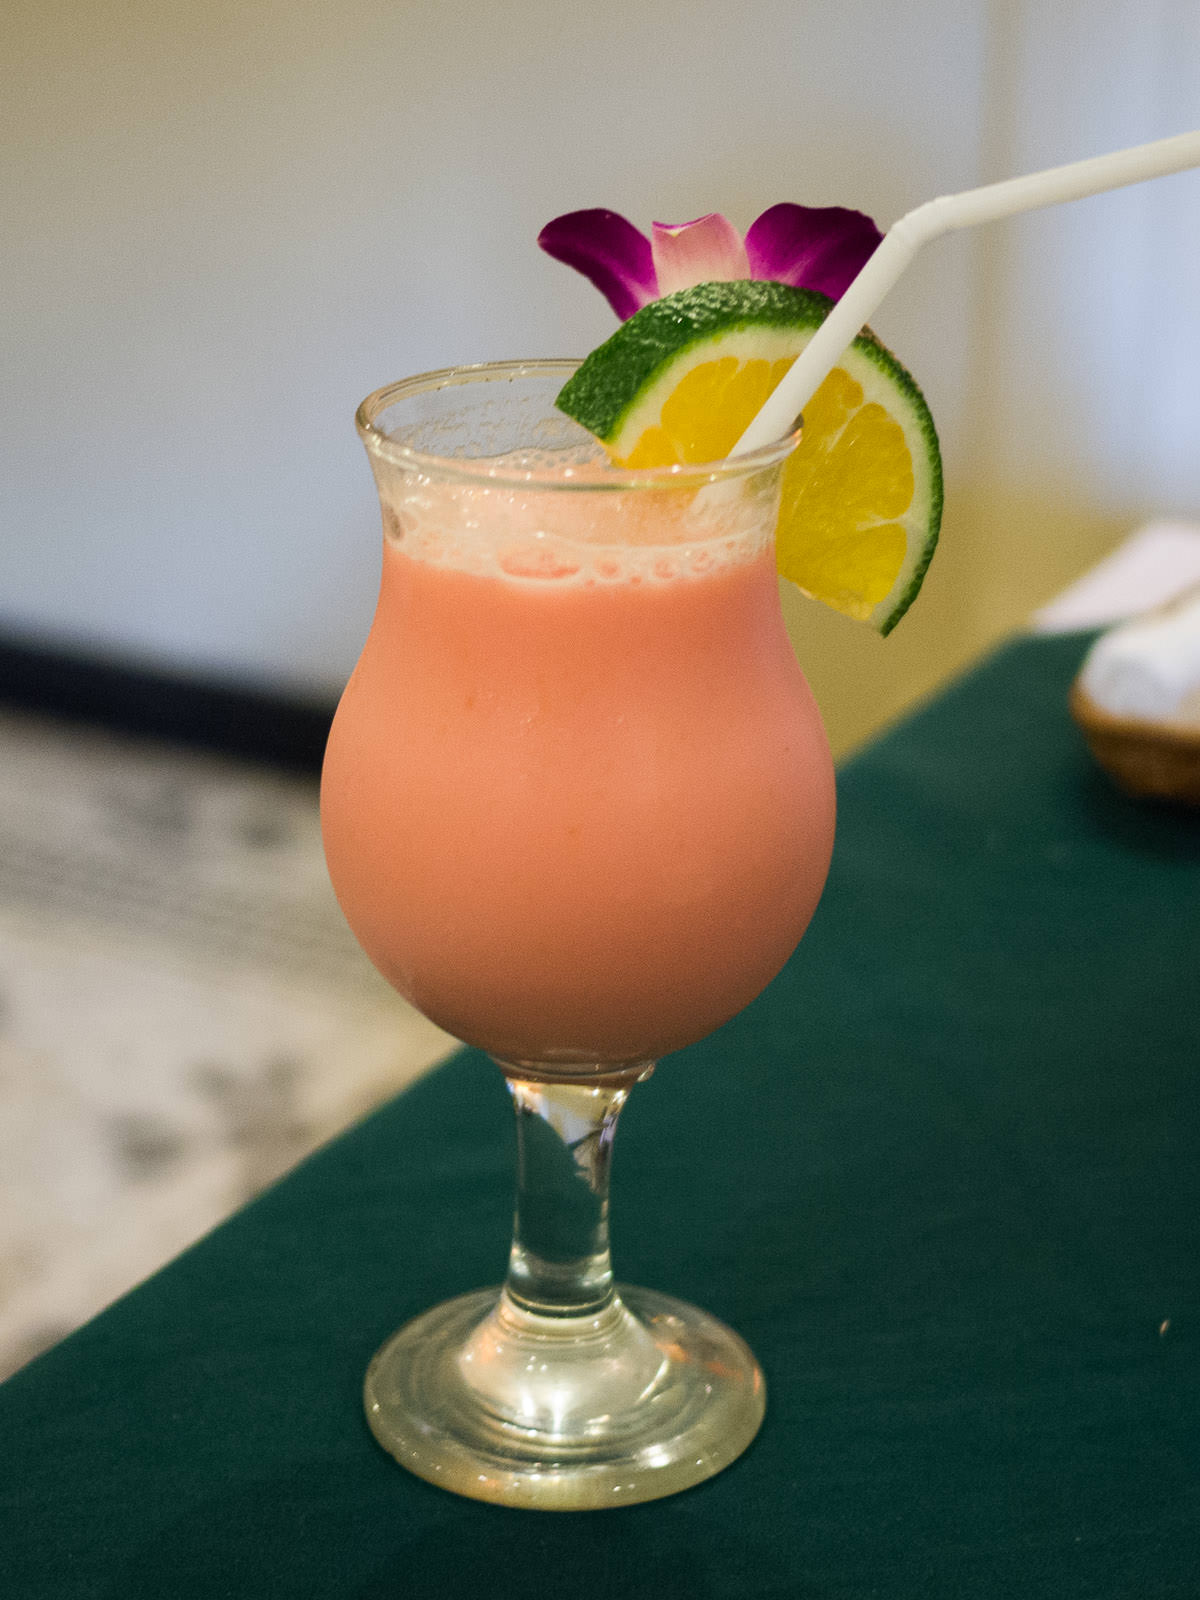 Pussy Food - mocktail with orange, pineapple, Grenadine and milk (US$5)